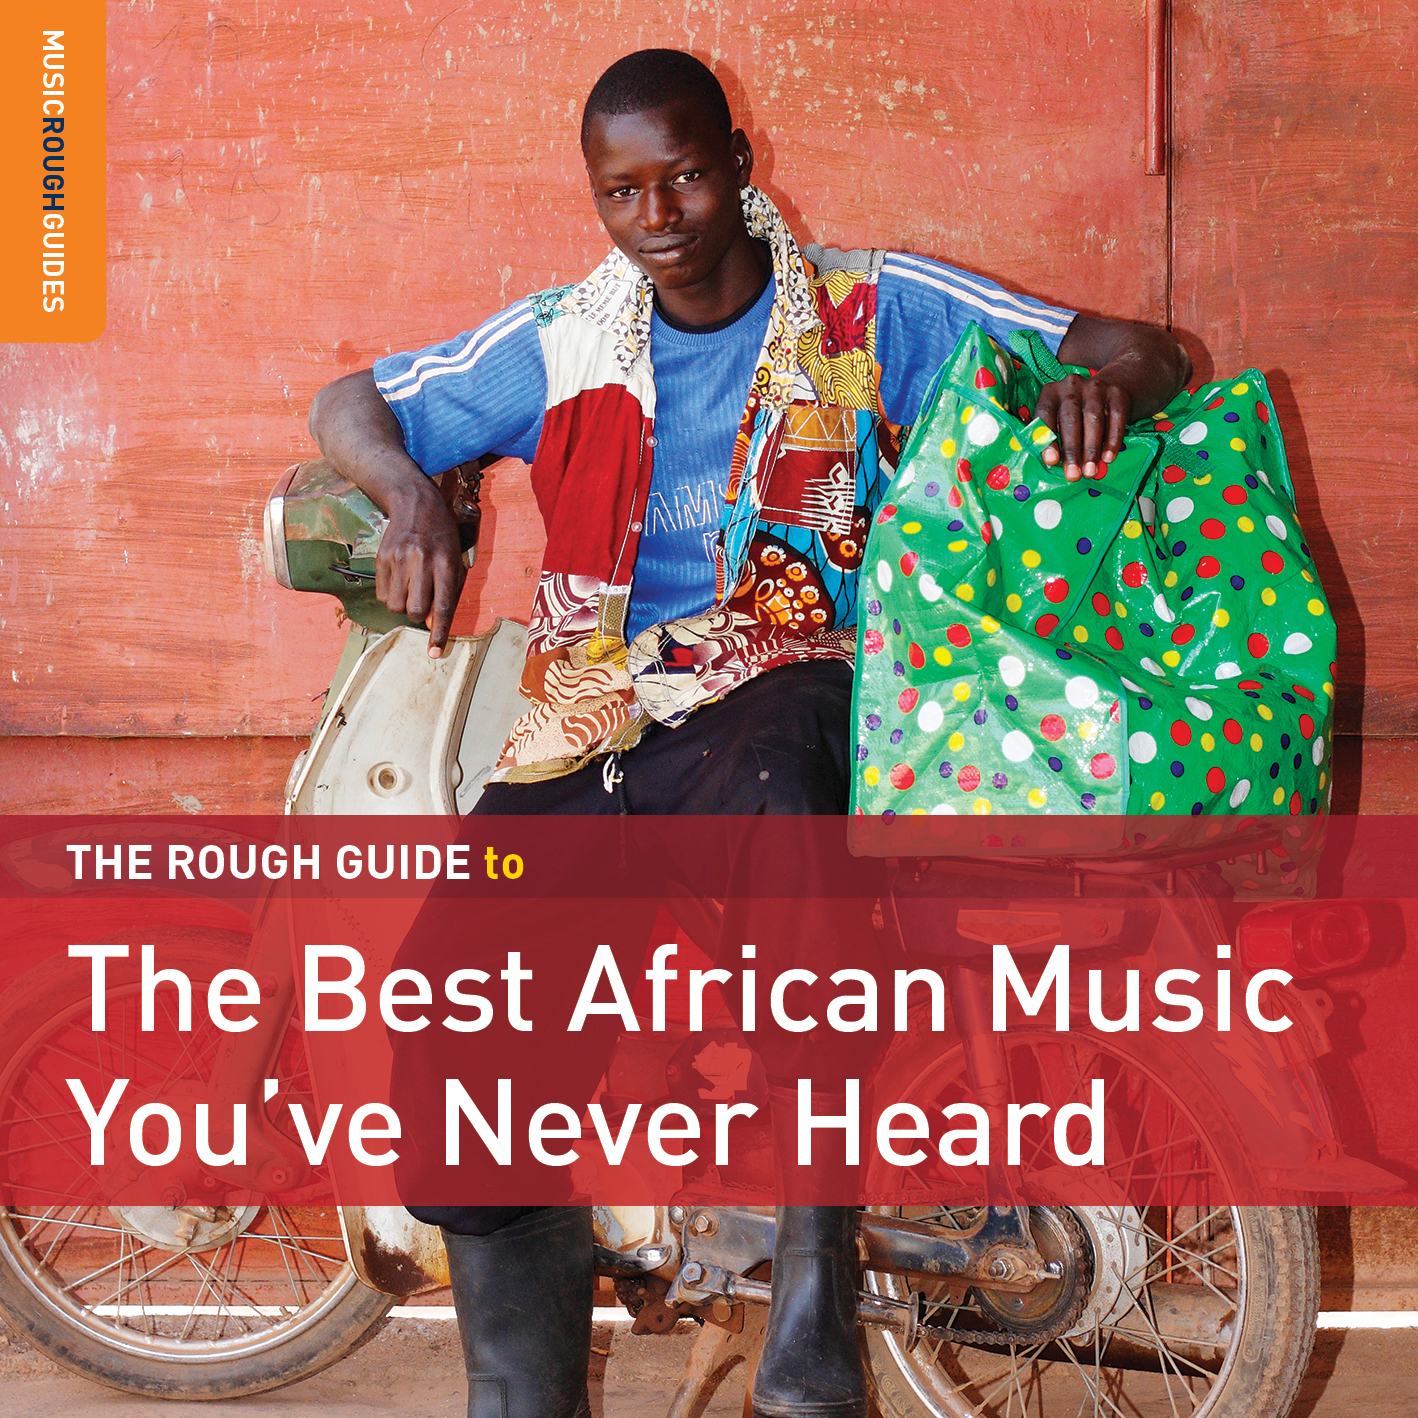 Title the rough guide to the best african music you ve never heard